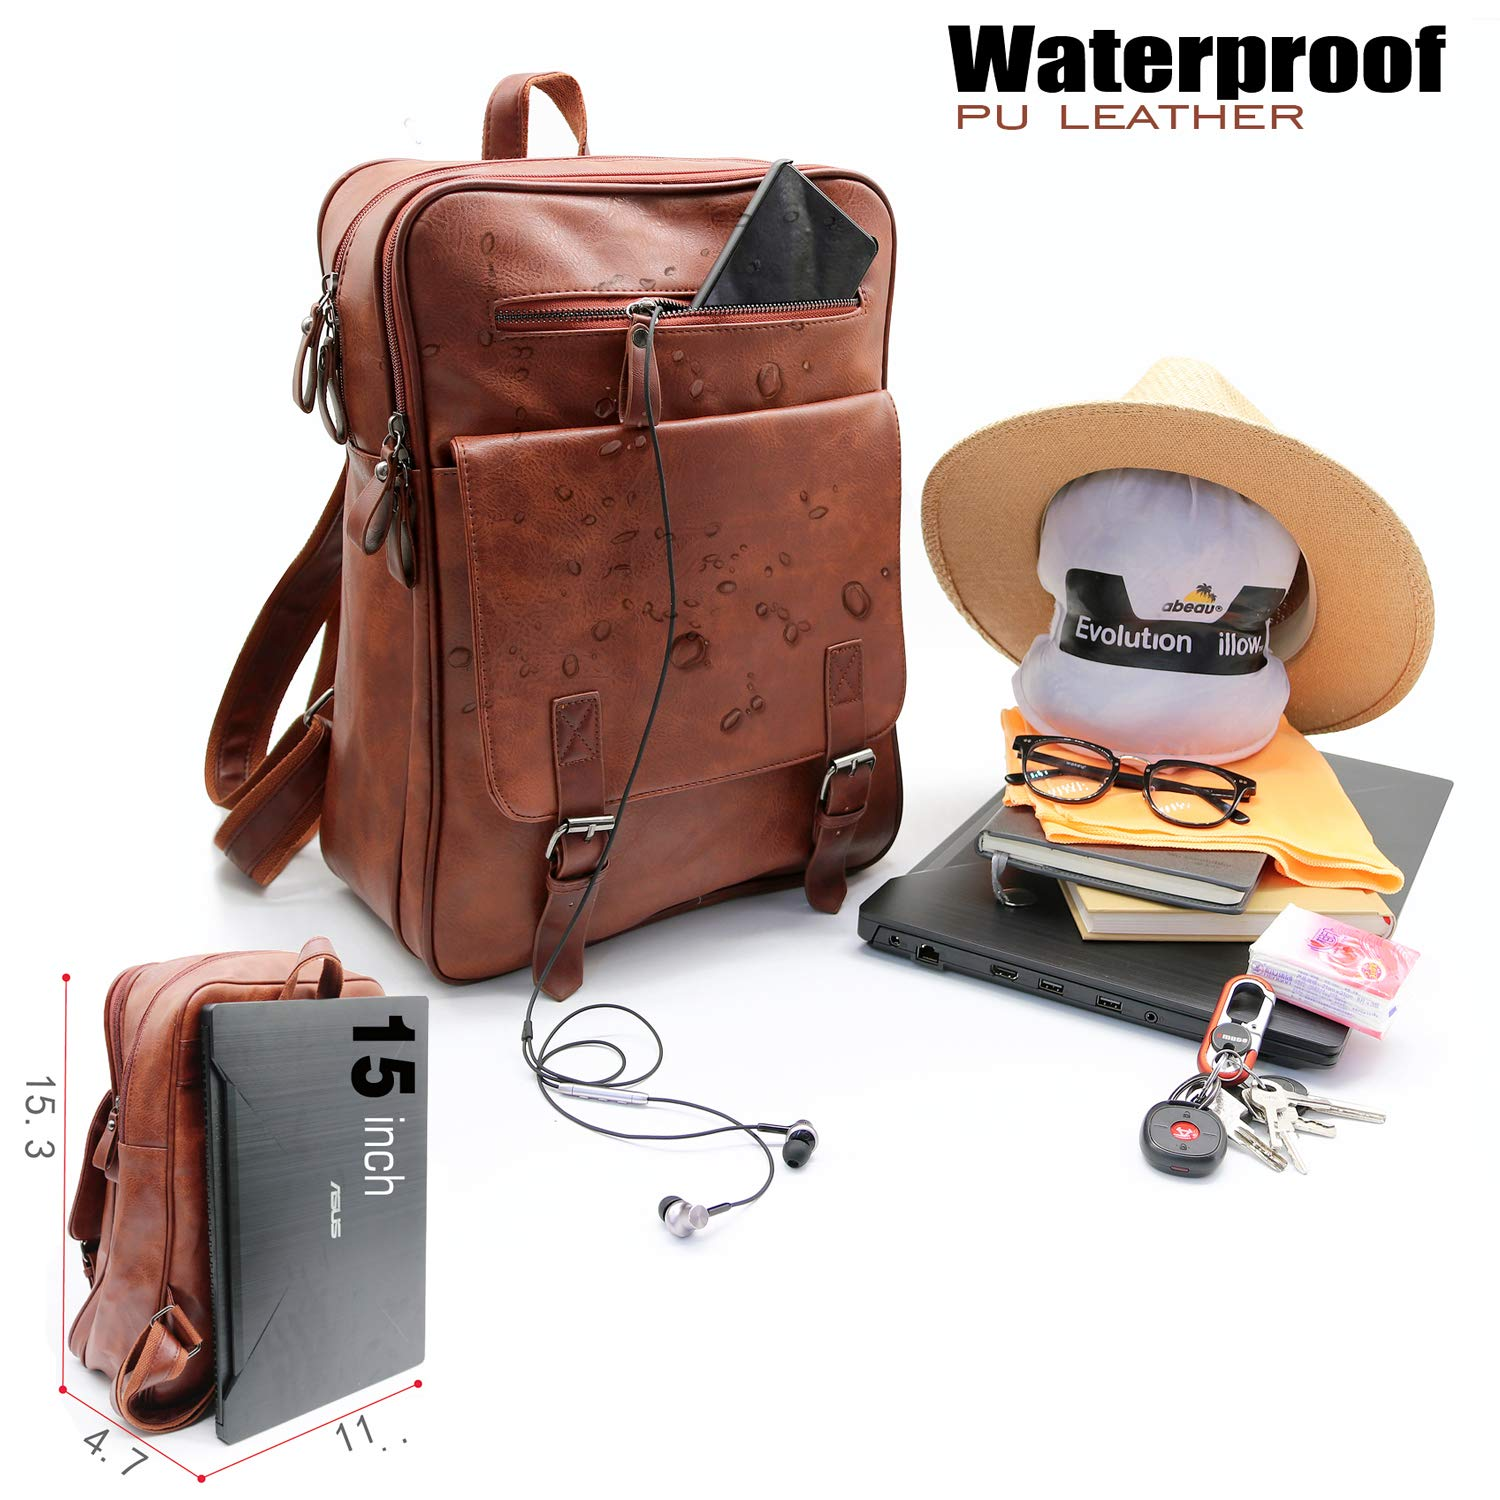 Women's Bags Womens Bag Lady Multifunction Backpack Pu Leather Shoulder Bags Casual Daypack Bookbag Travel Rucksack Diversified Latest Designs